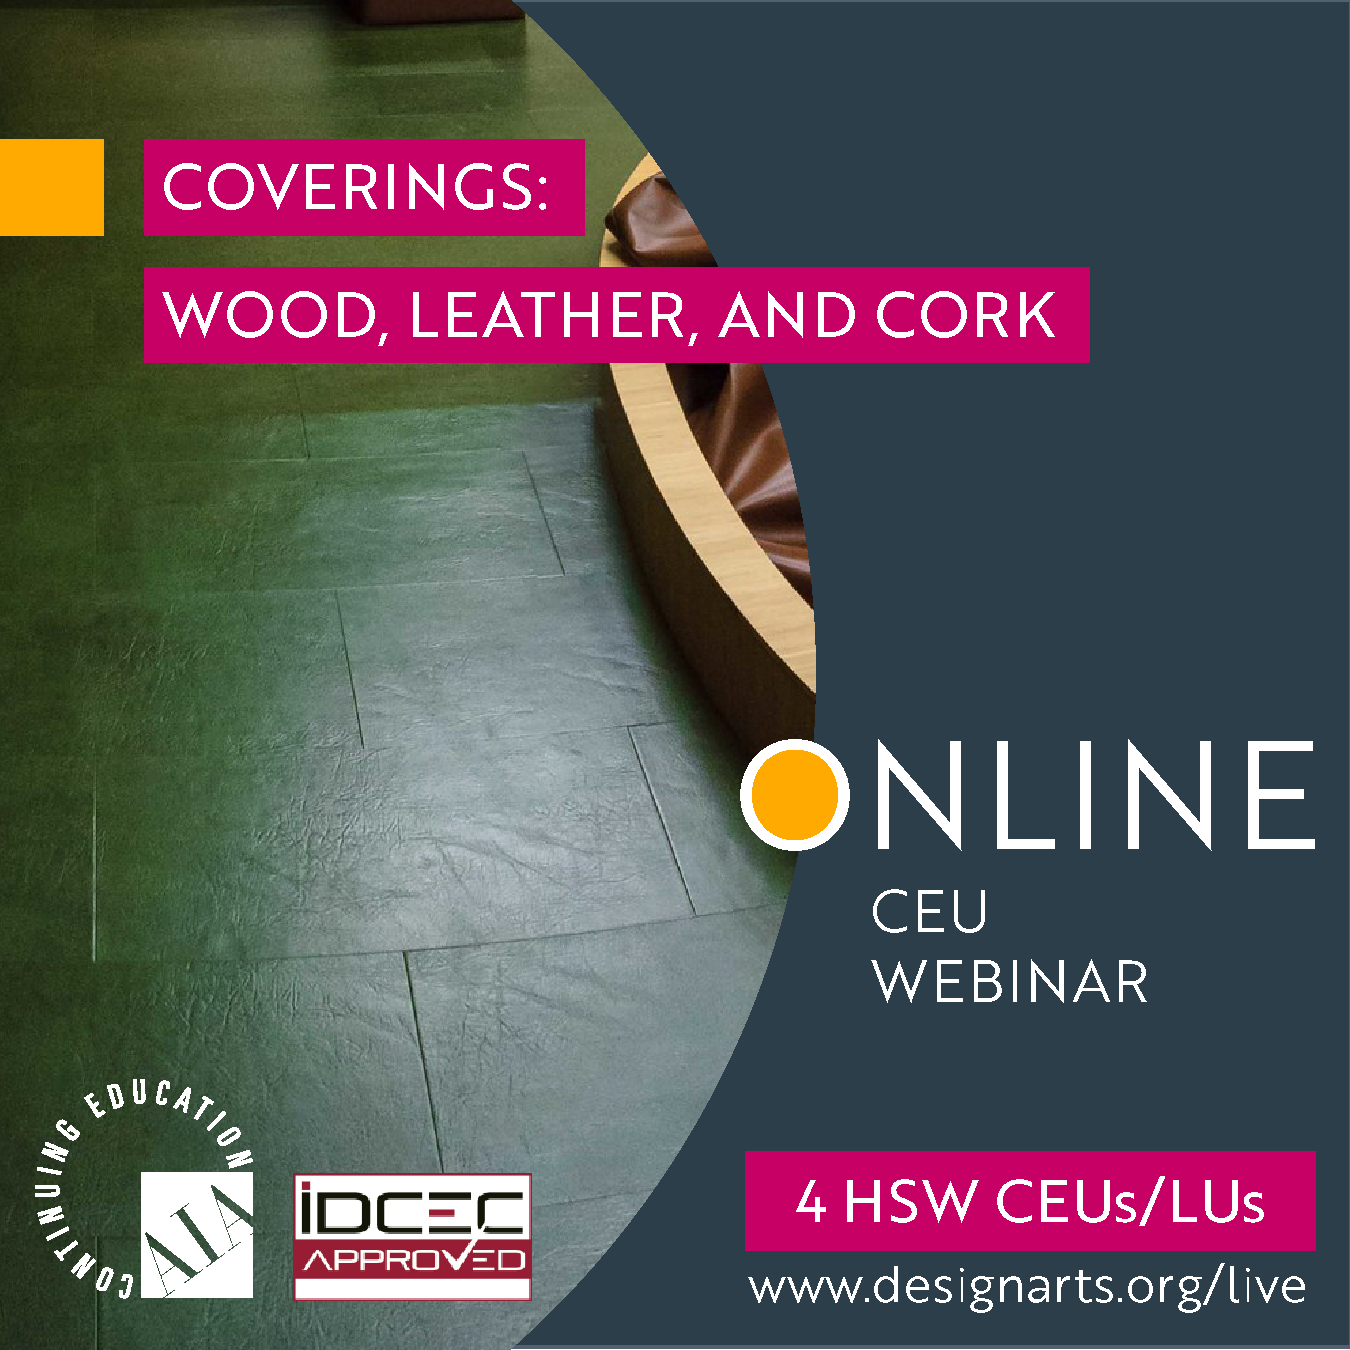 CEU: COVERINGS: WOOD, LEATHER AND CORK